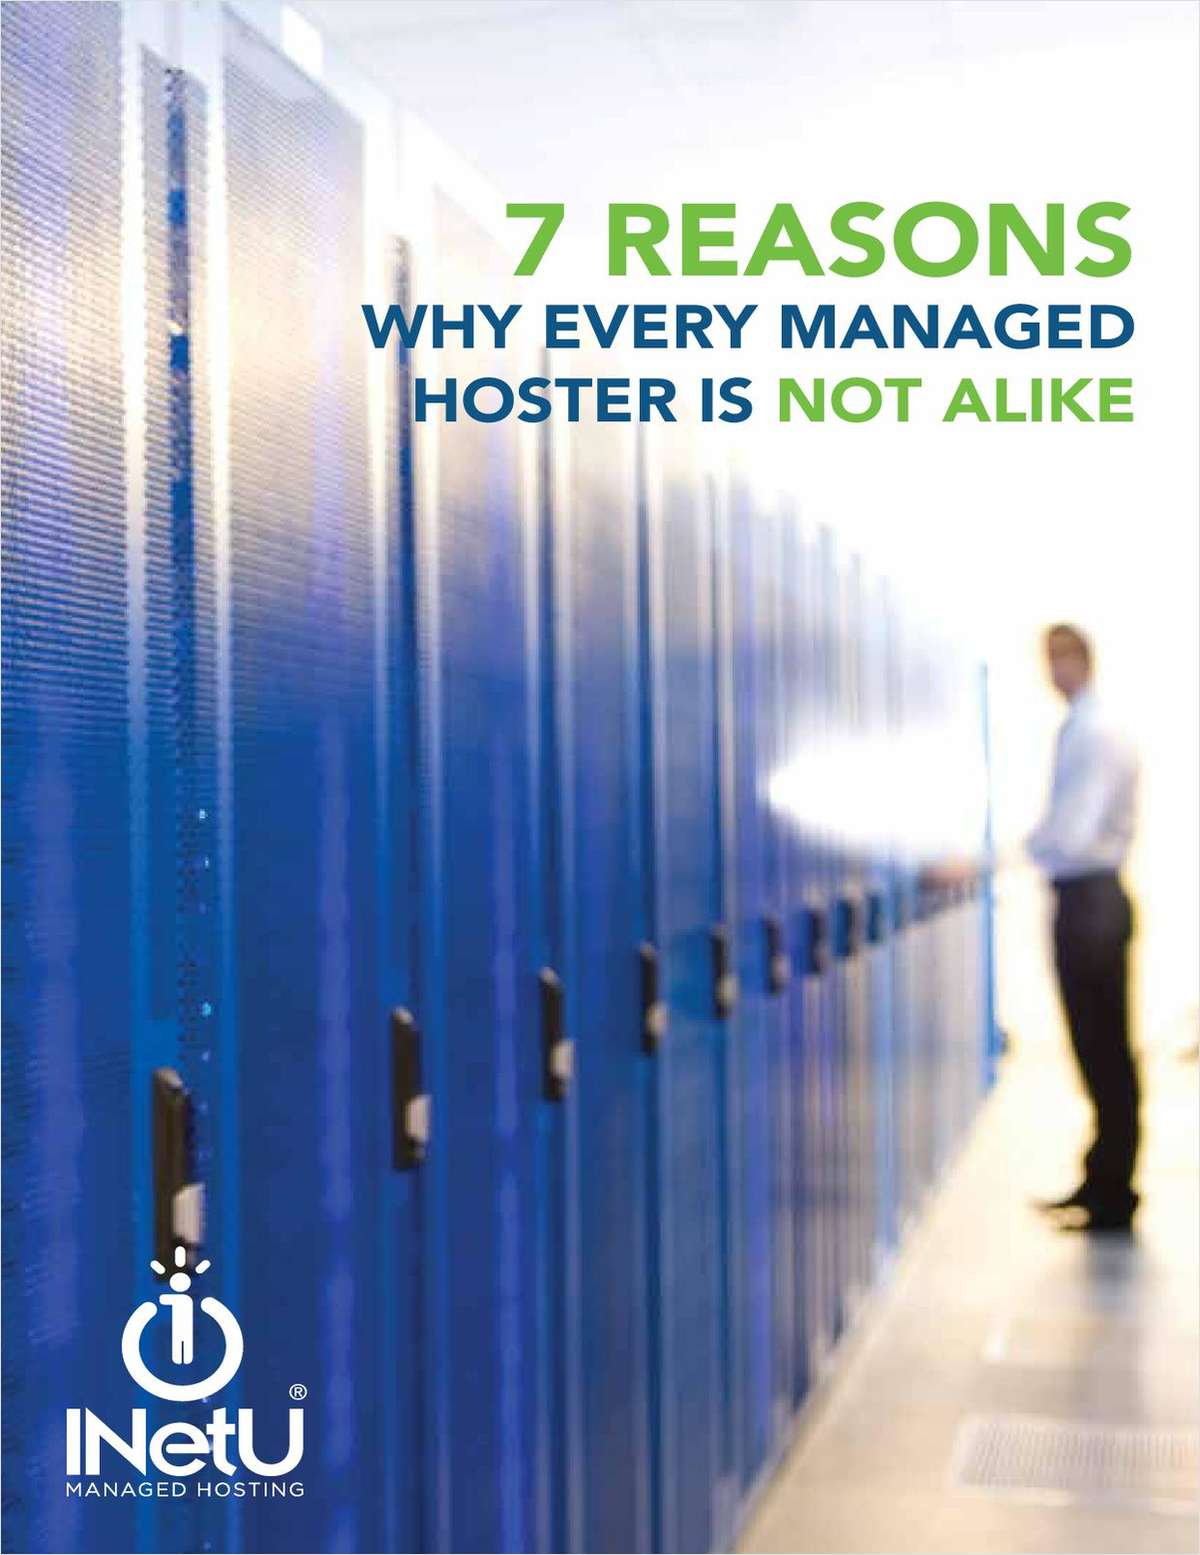 7 Reasons Every Managed Hoster is Not Alike